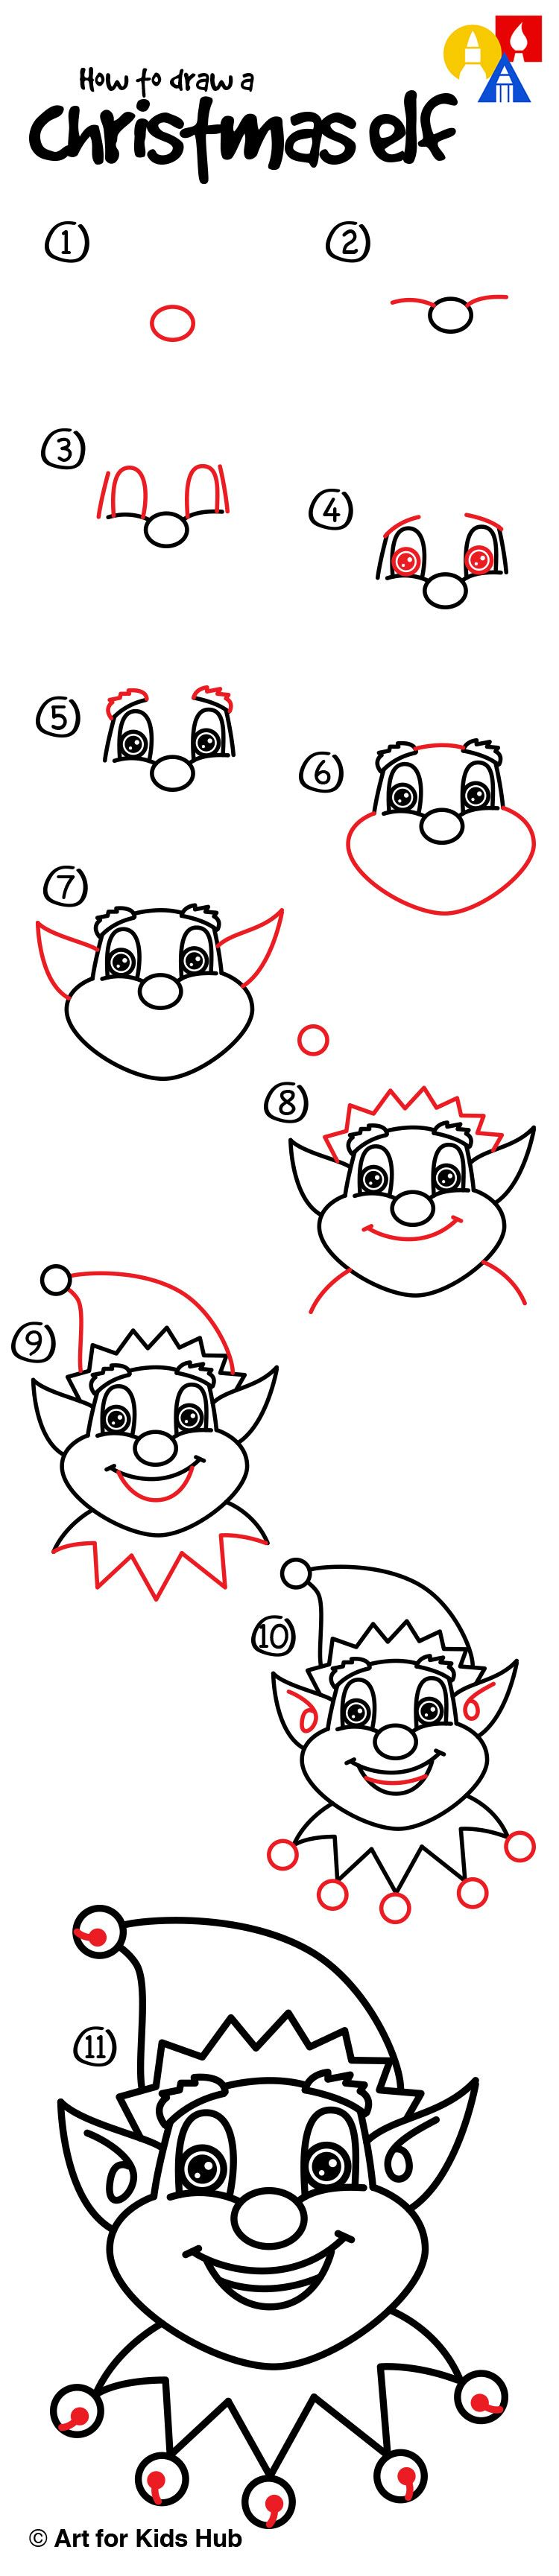 How to Draw Cute / Kawaii / Chibi Pichu from Pokemon in